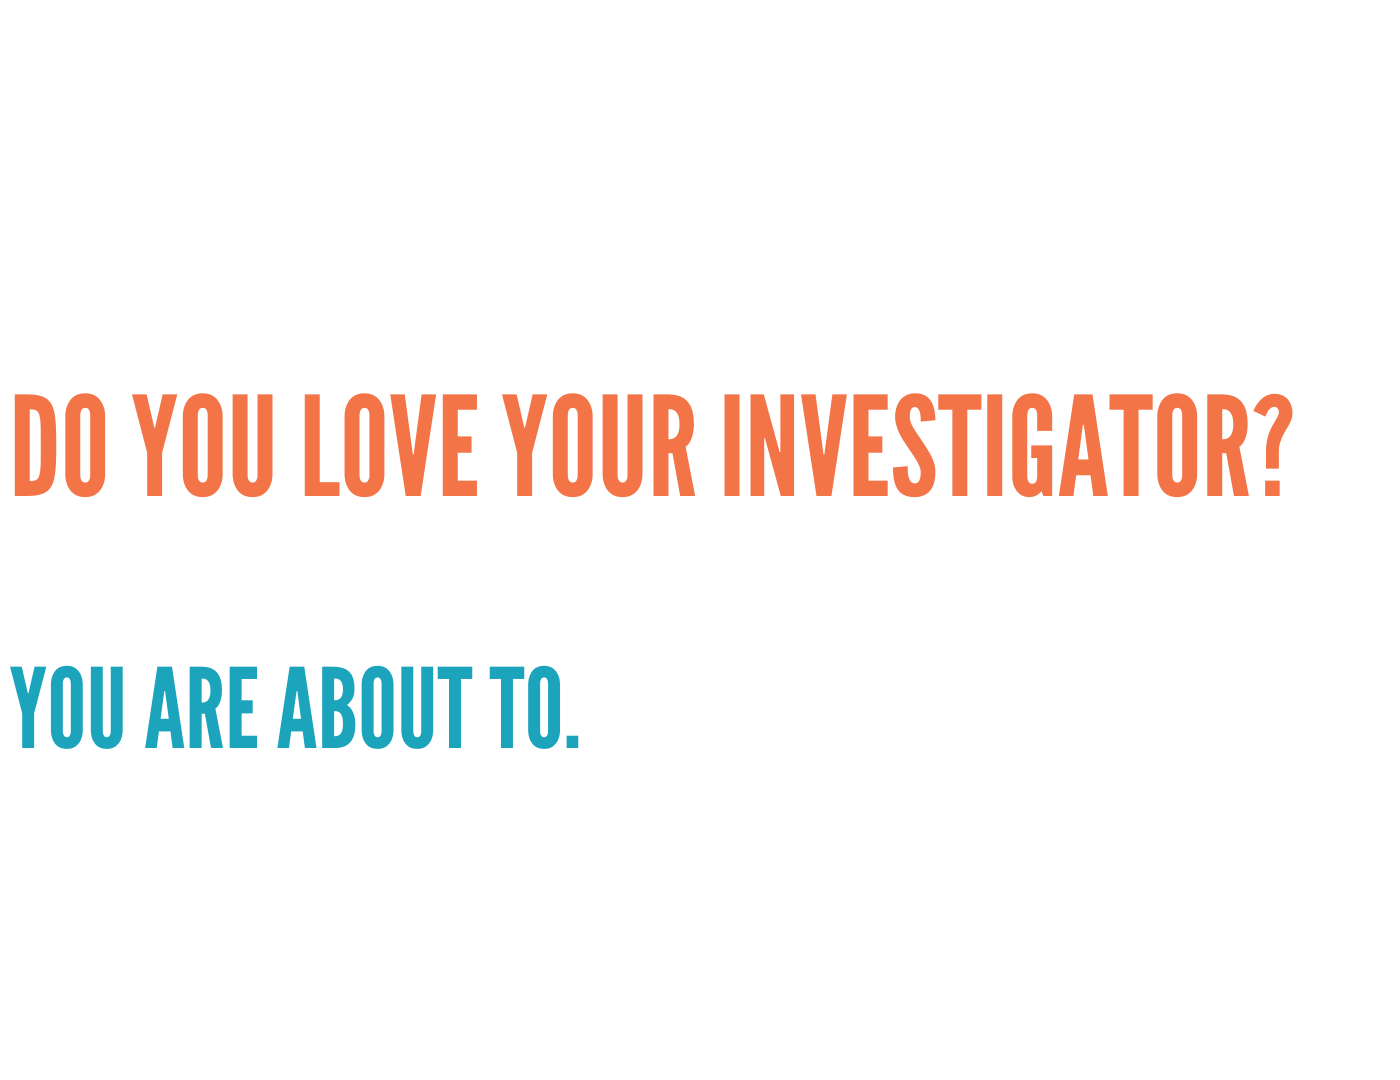 Do you love your investigator (2)